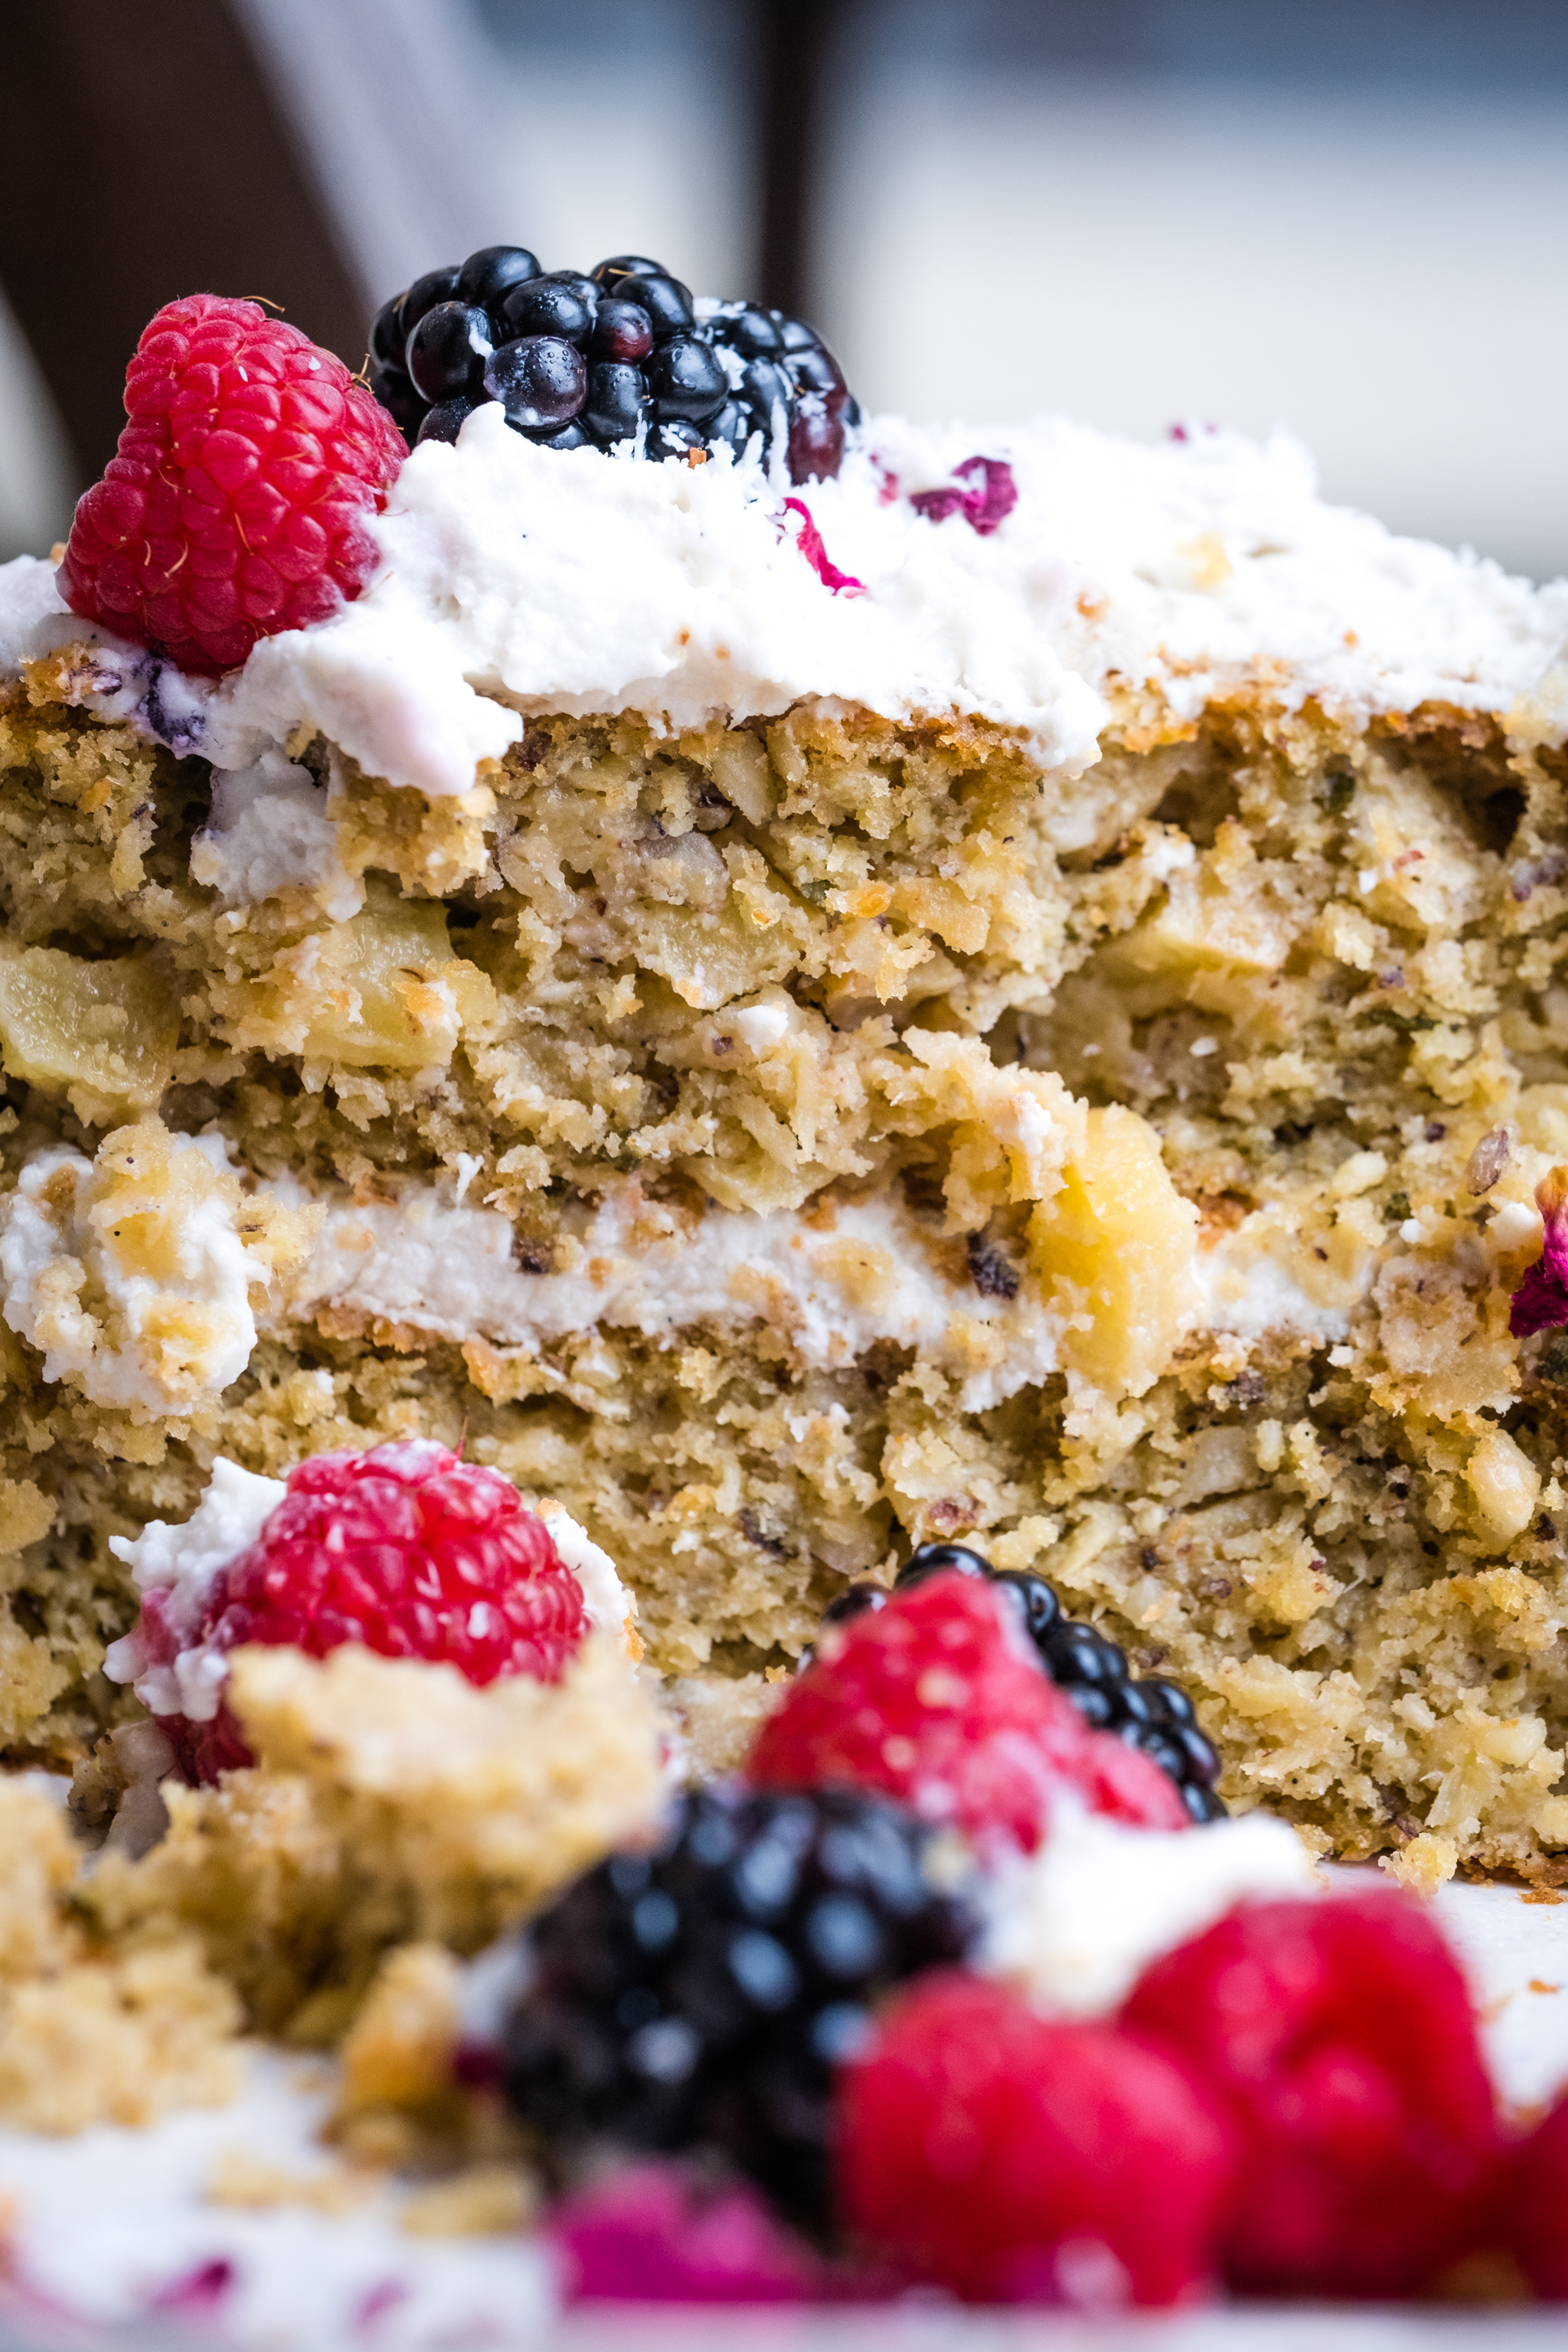 Parsnip cake with berries